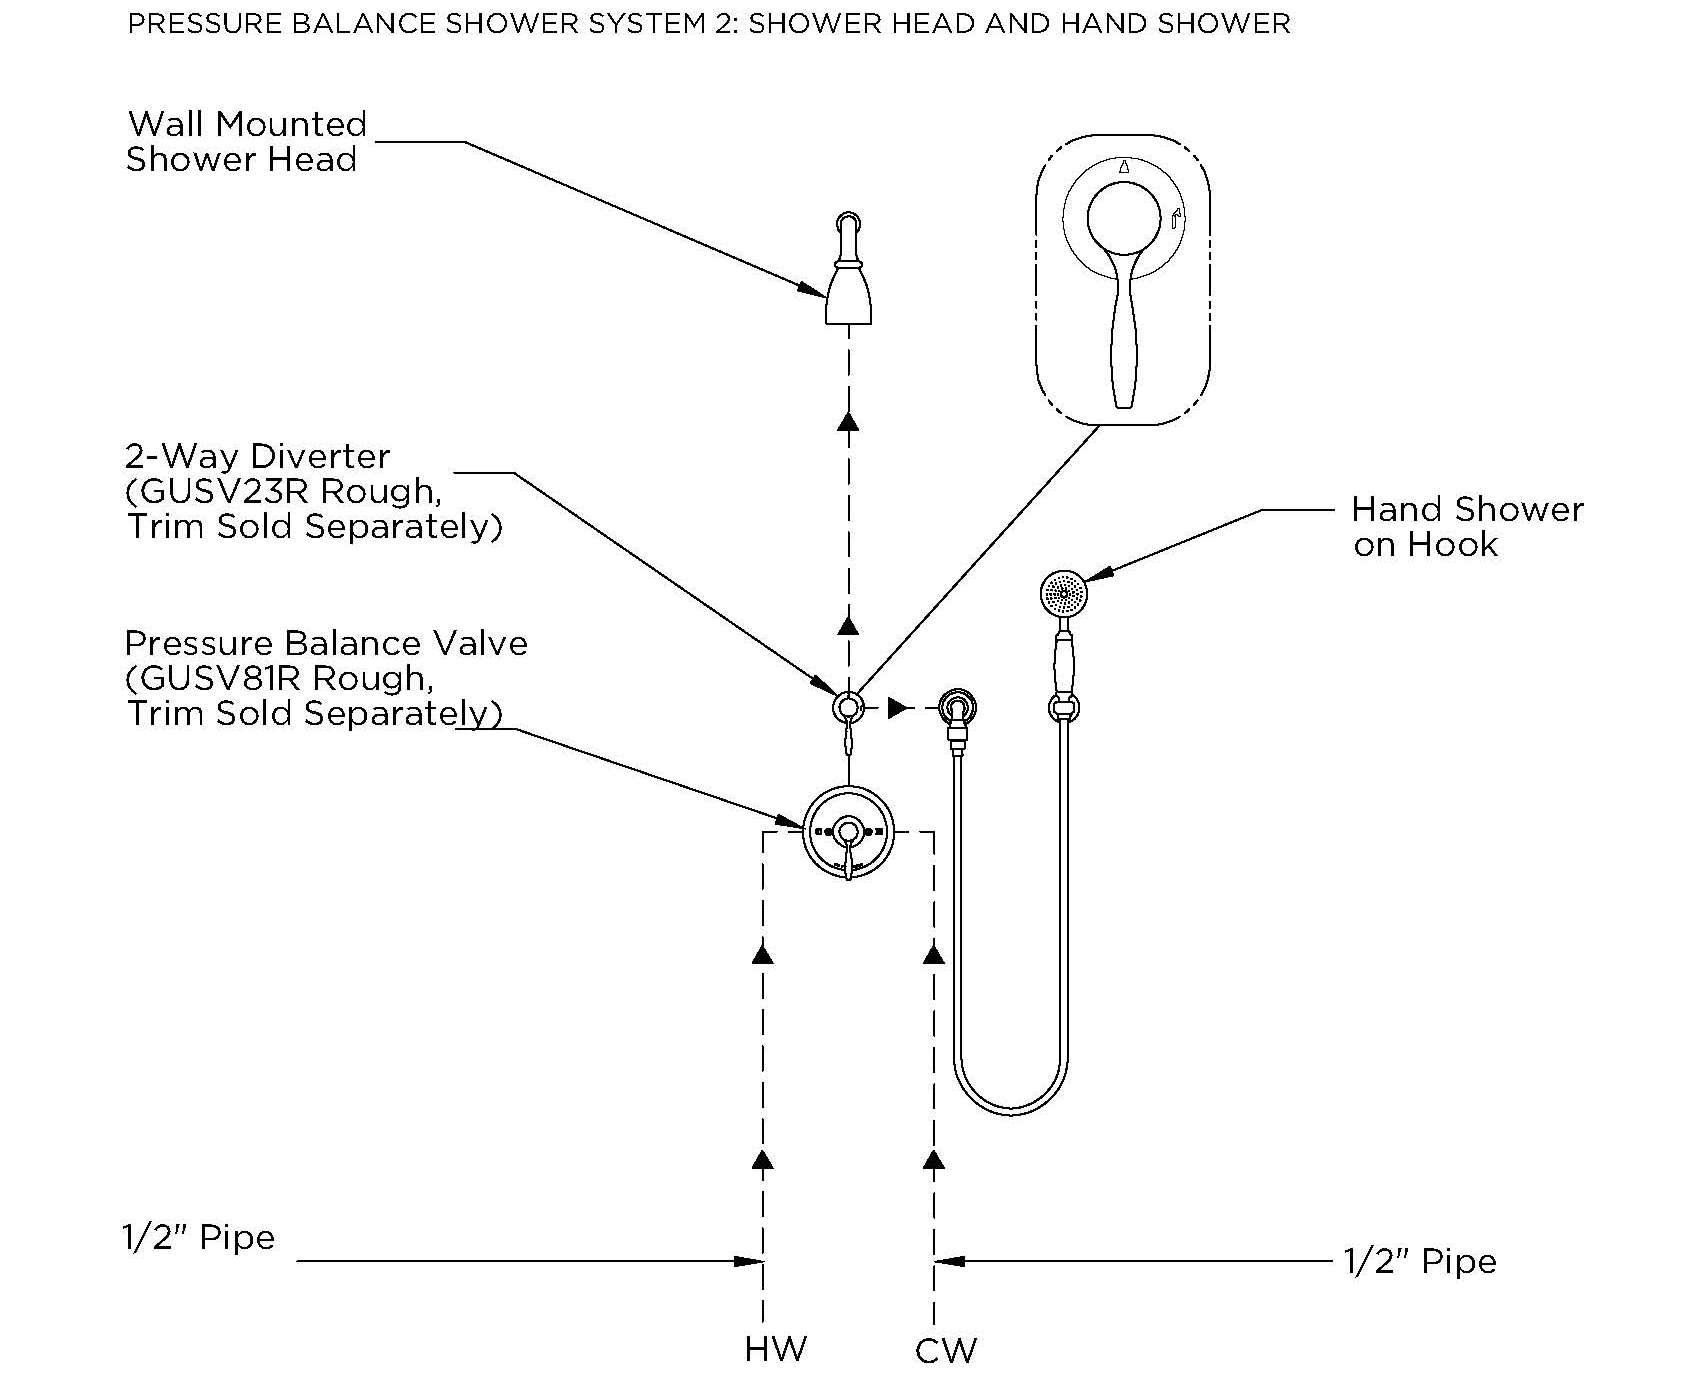 Multi Head Shower Plumbing Diagram Pictures To Pin On